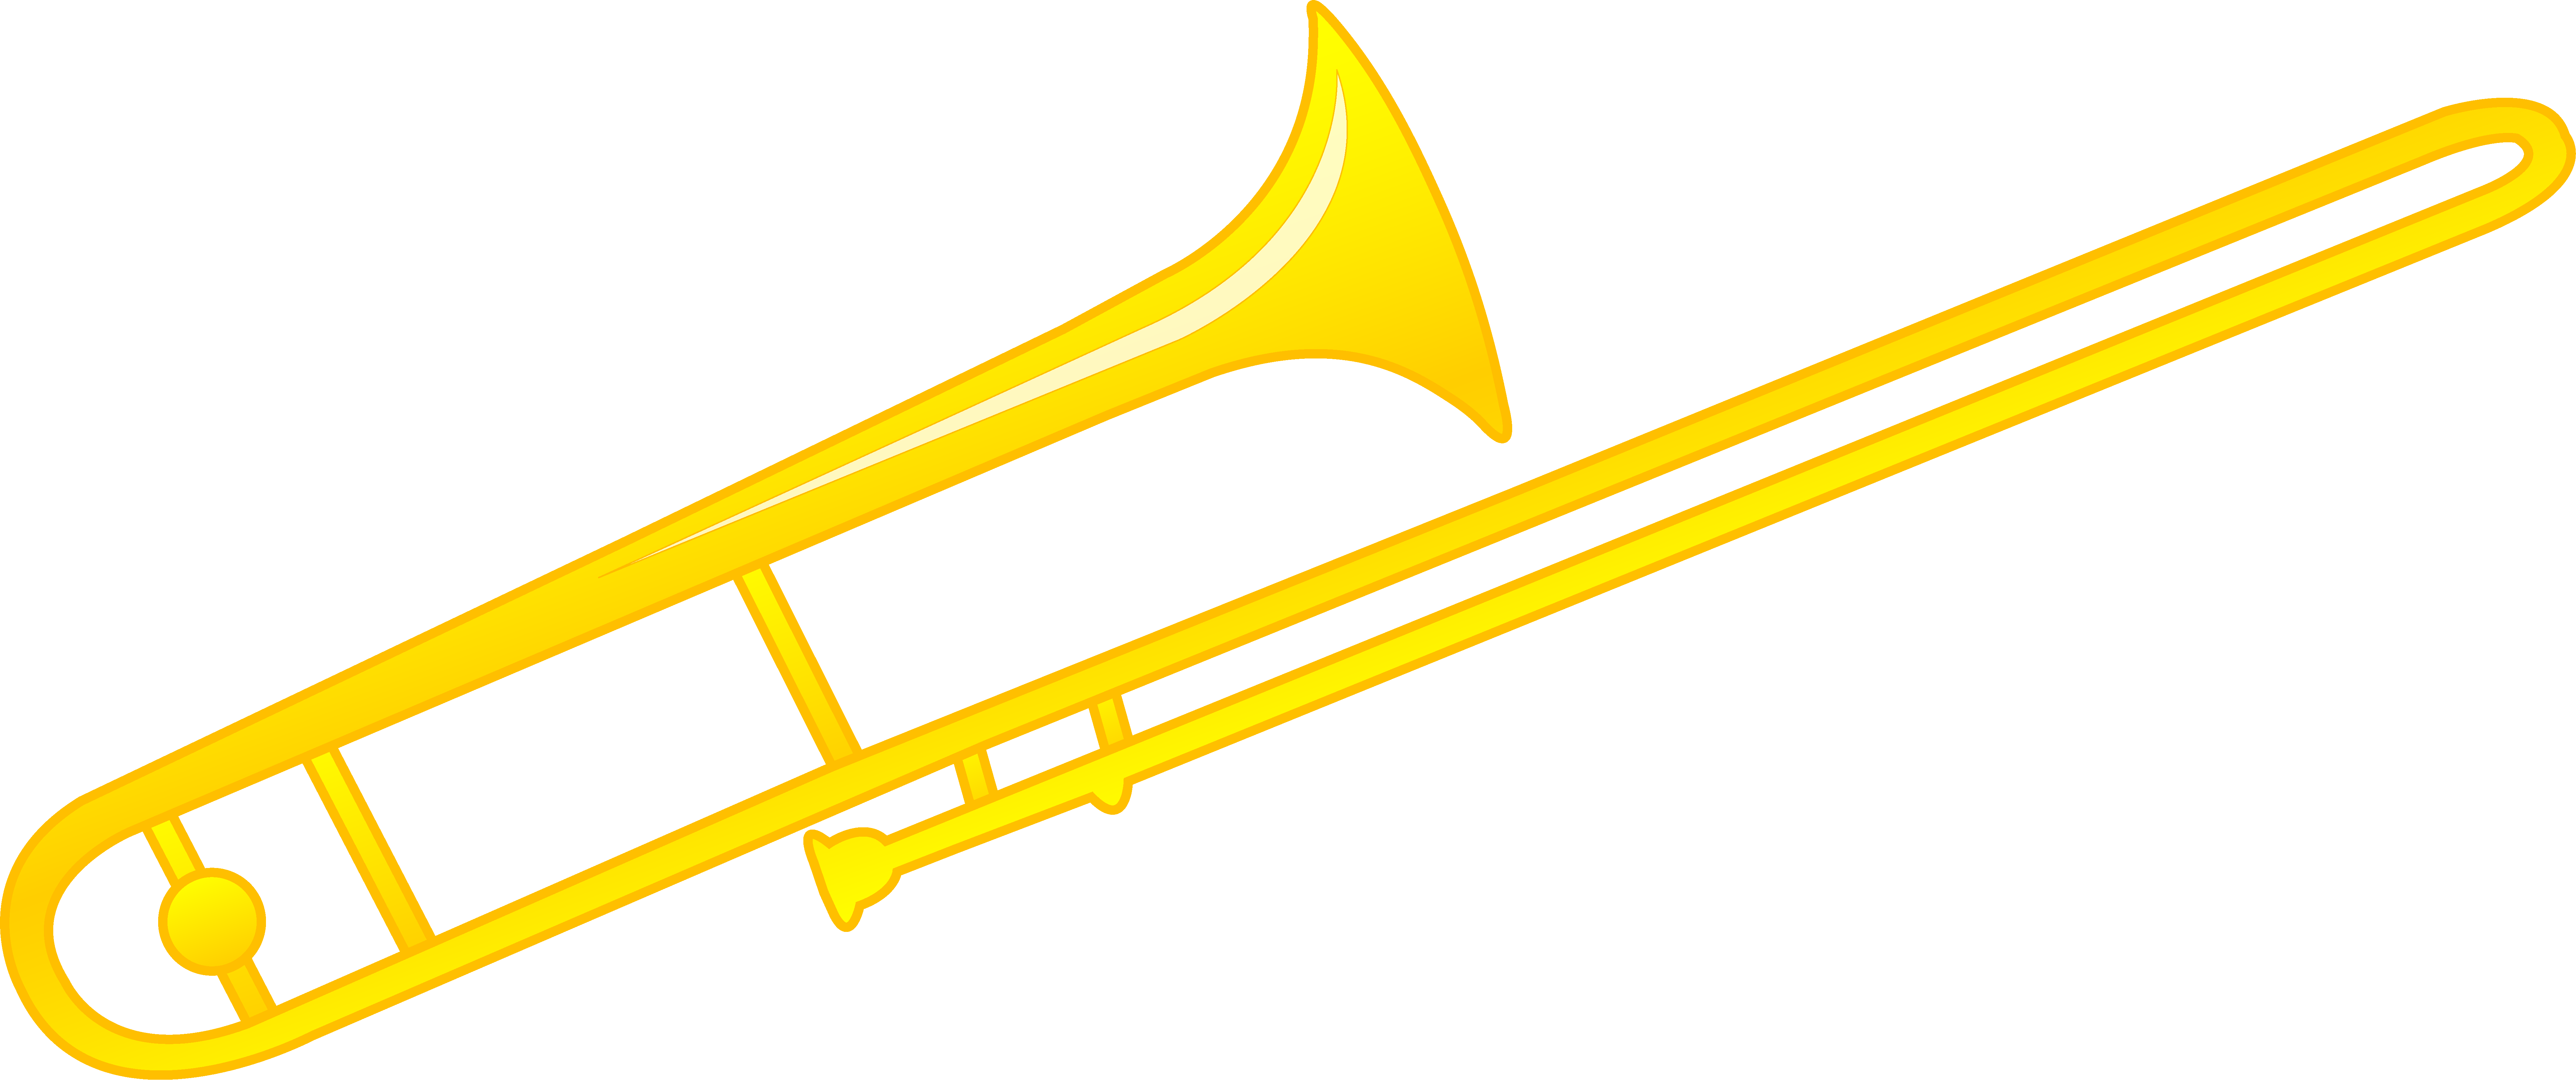 Trombones clipart clip freeuse library Free Trombone Cliparts, Download Free Clip Art, Free Clip ... clip freeuse library